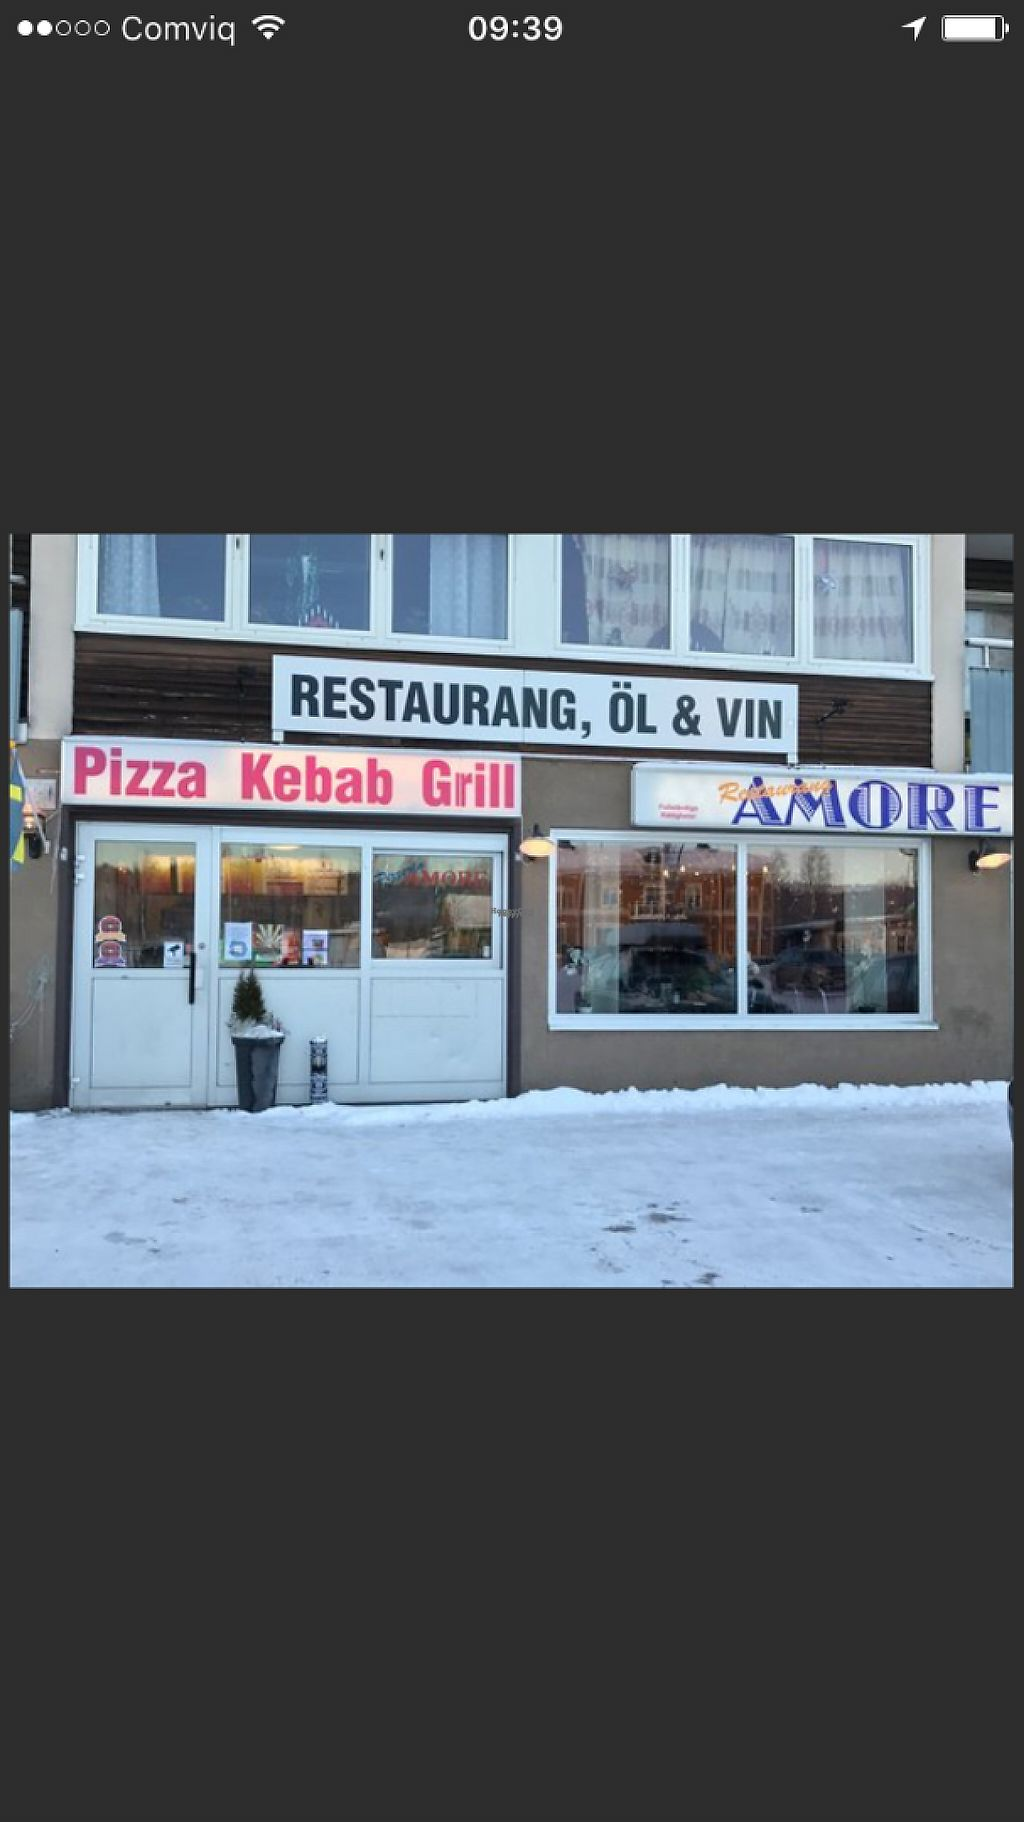 """Photo of Pizzeria Amore - Orsa  by <a href=""""/members/profile/OsmanAk"""">OsmanAk</a> <br/>Pizzeria Amore Orsa .  <br/> January 24, 2017  - <a href='/contact/abuse/image/85358/216089'>Report</a>"""